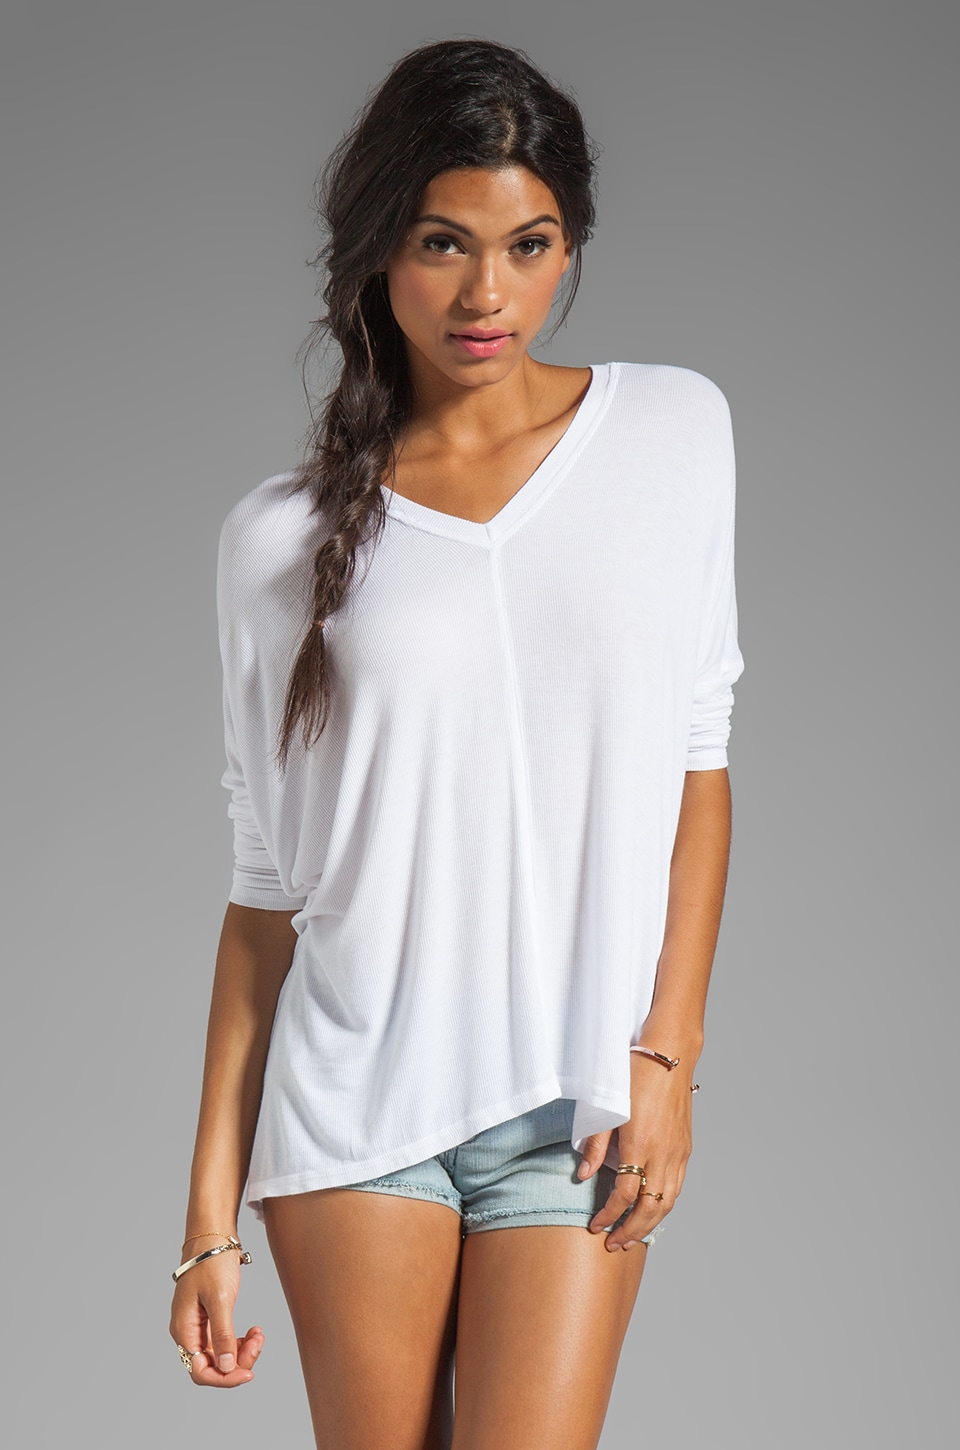 dolan 2x1 Rib Oversized Square Tee in White